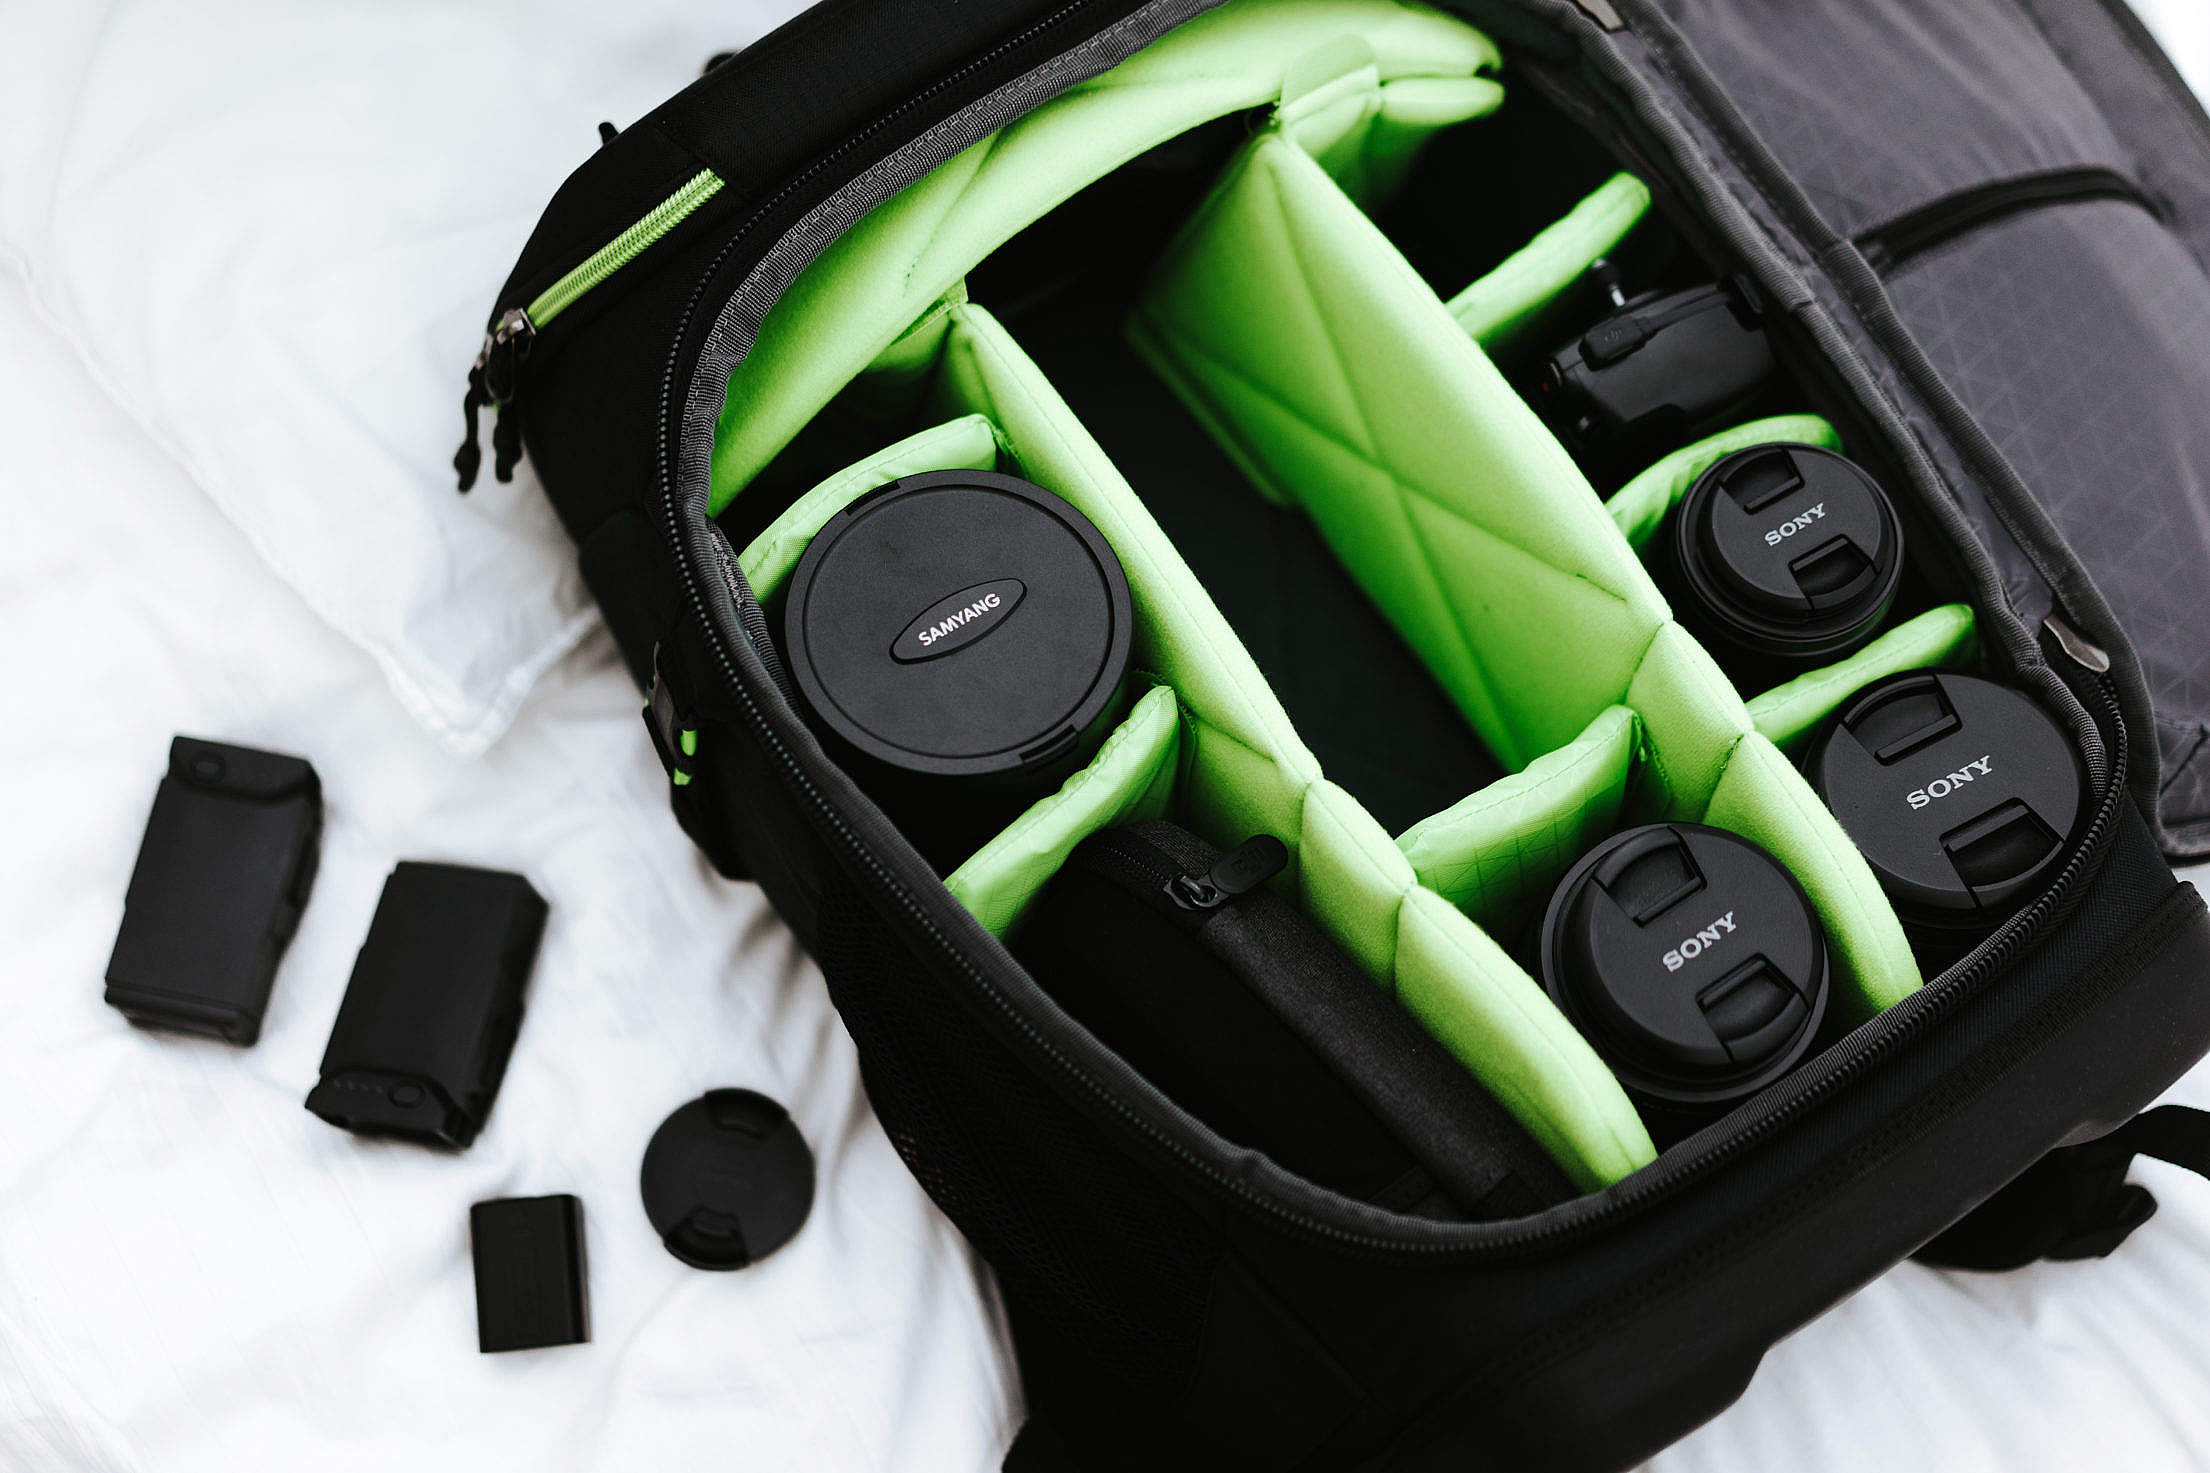 Camera Bag with Lenses Free Stock Photo